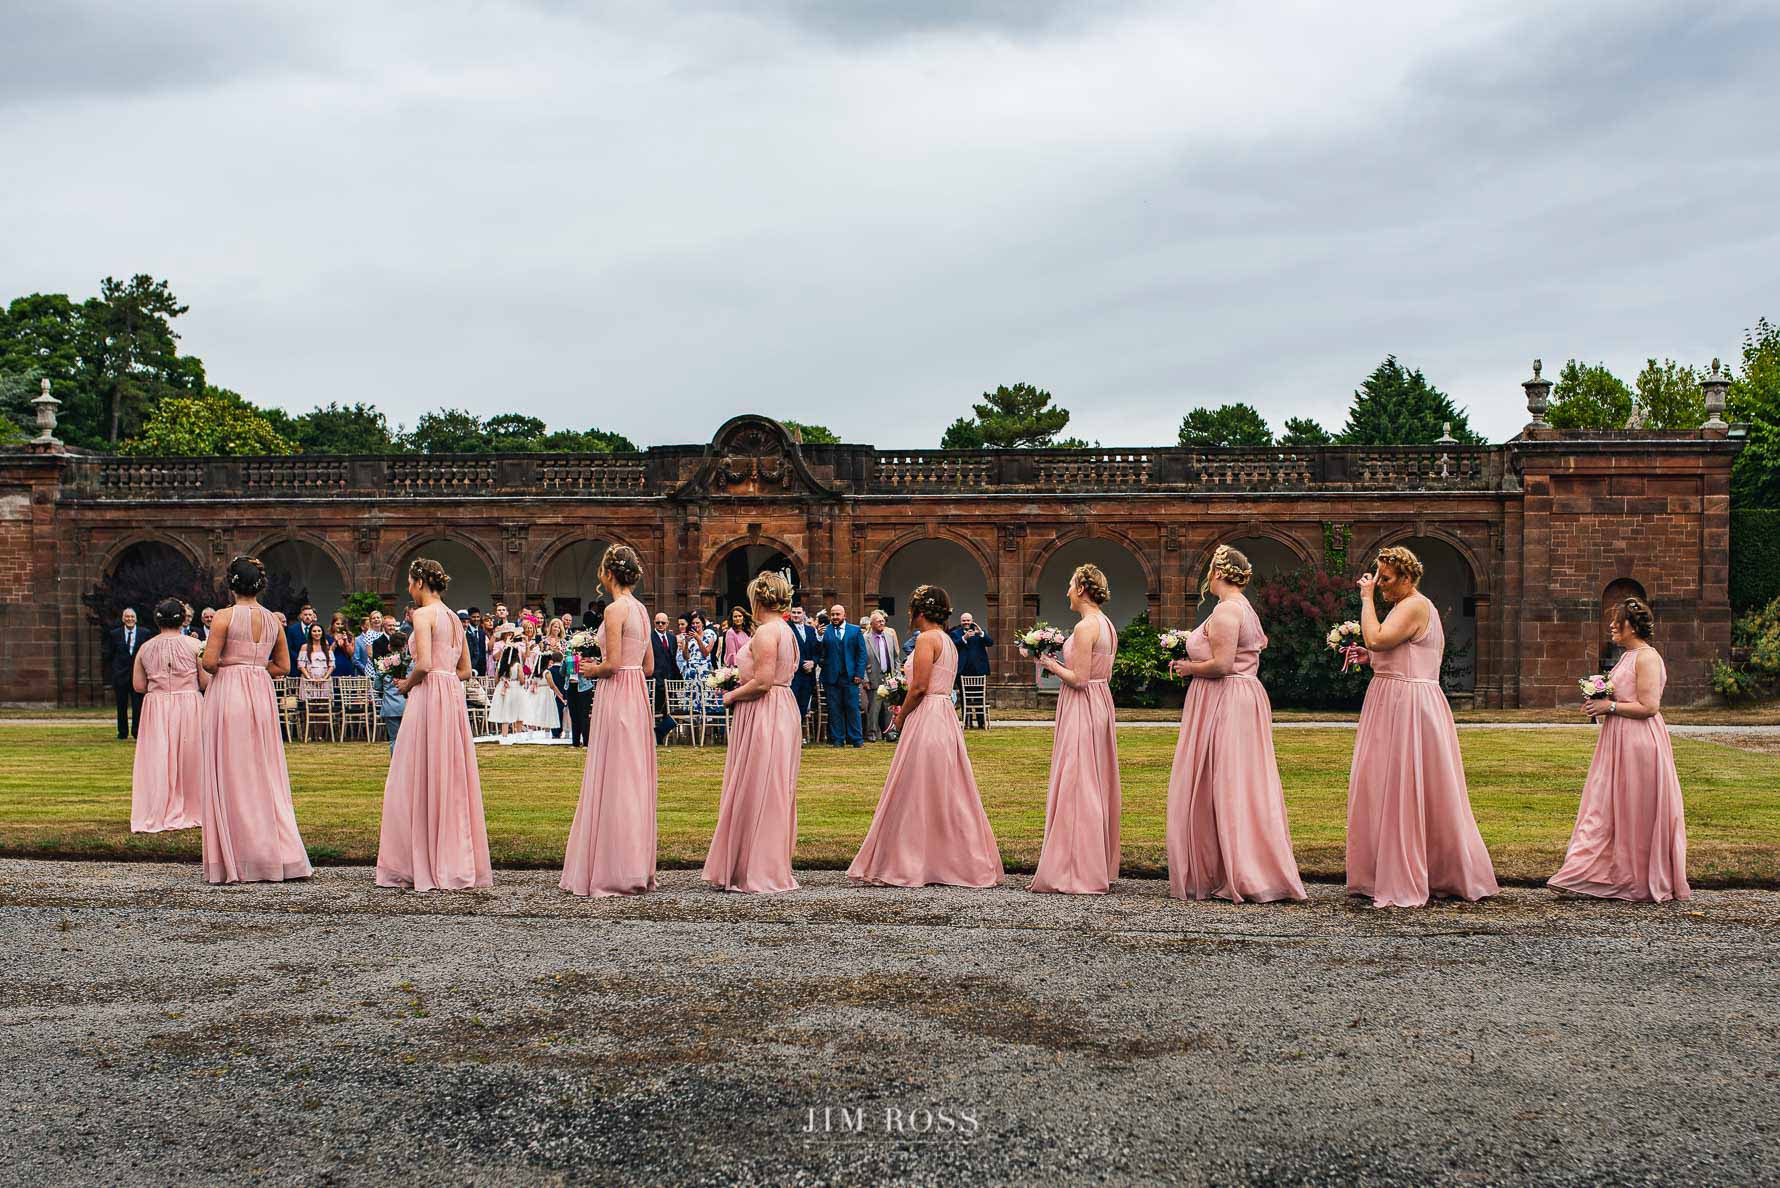 A line-up of bridesmaids at outdoor ceremony